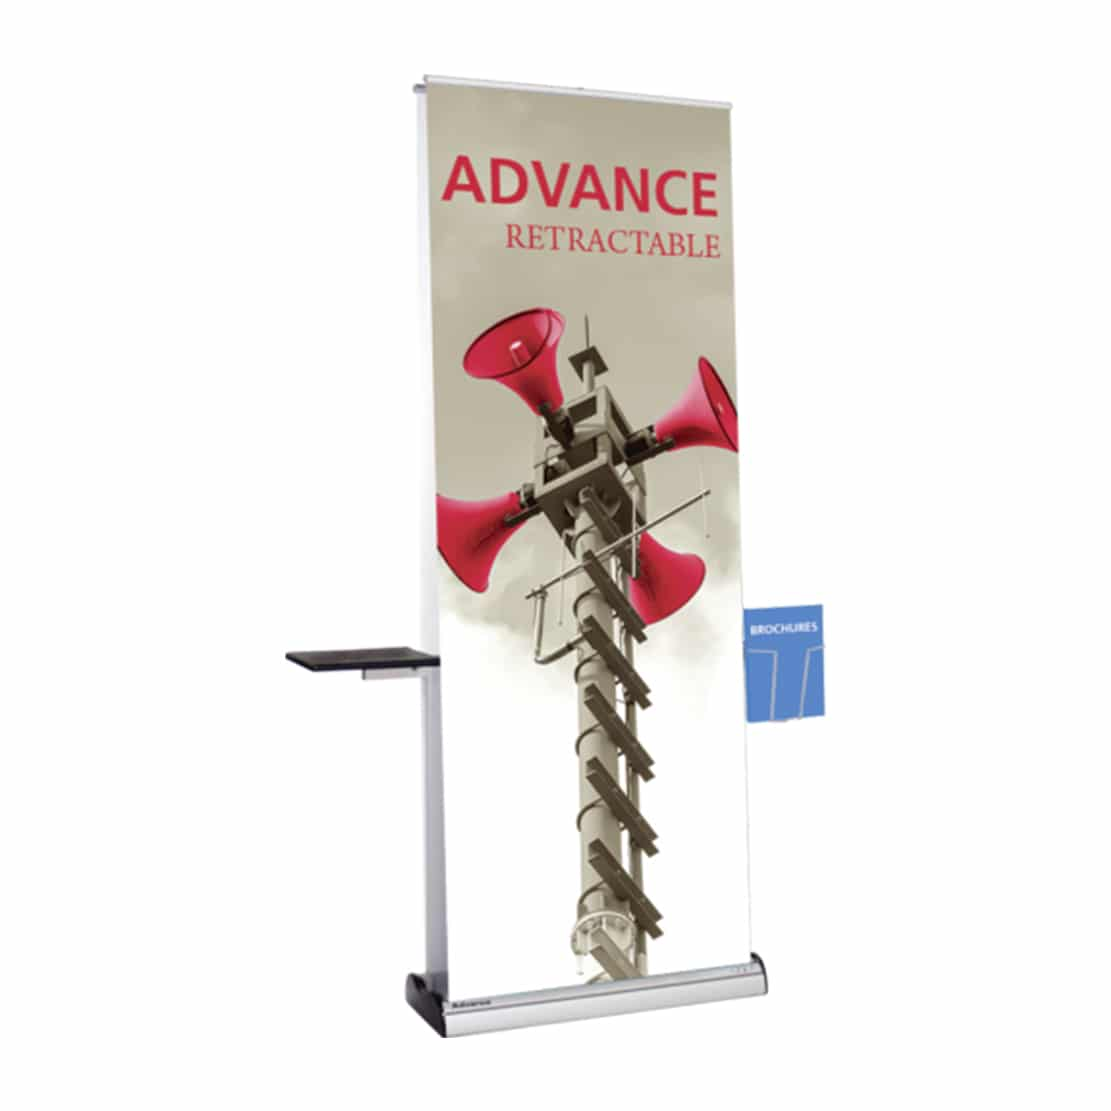 bannerstand full accessory kit with shelf and rack on advance display